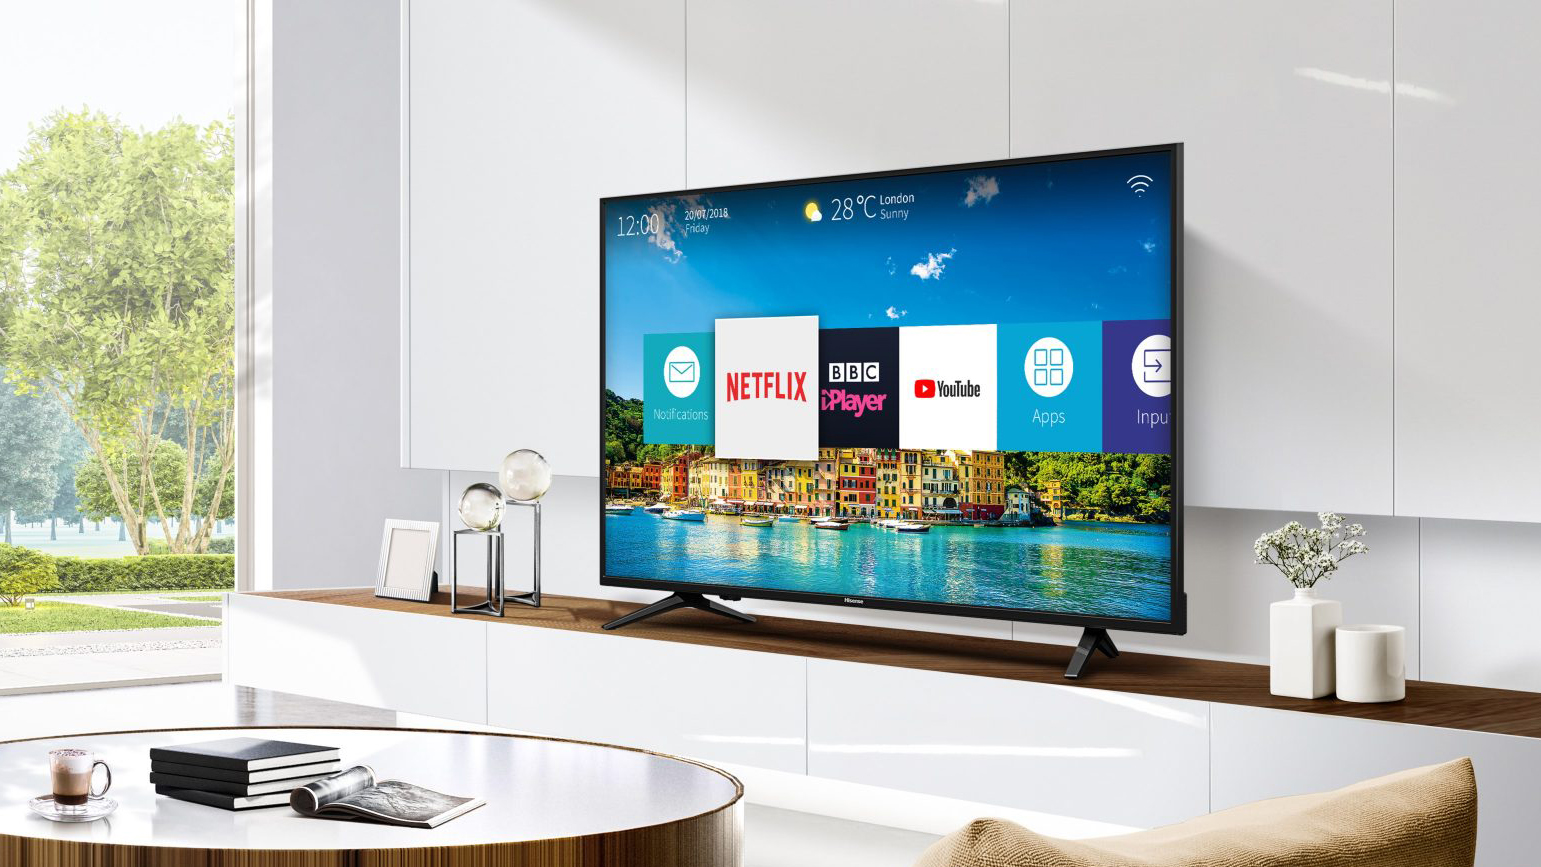 Hisense A6200 Led Tv H50a6200uk Review Techradar